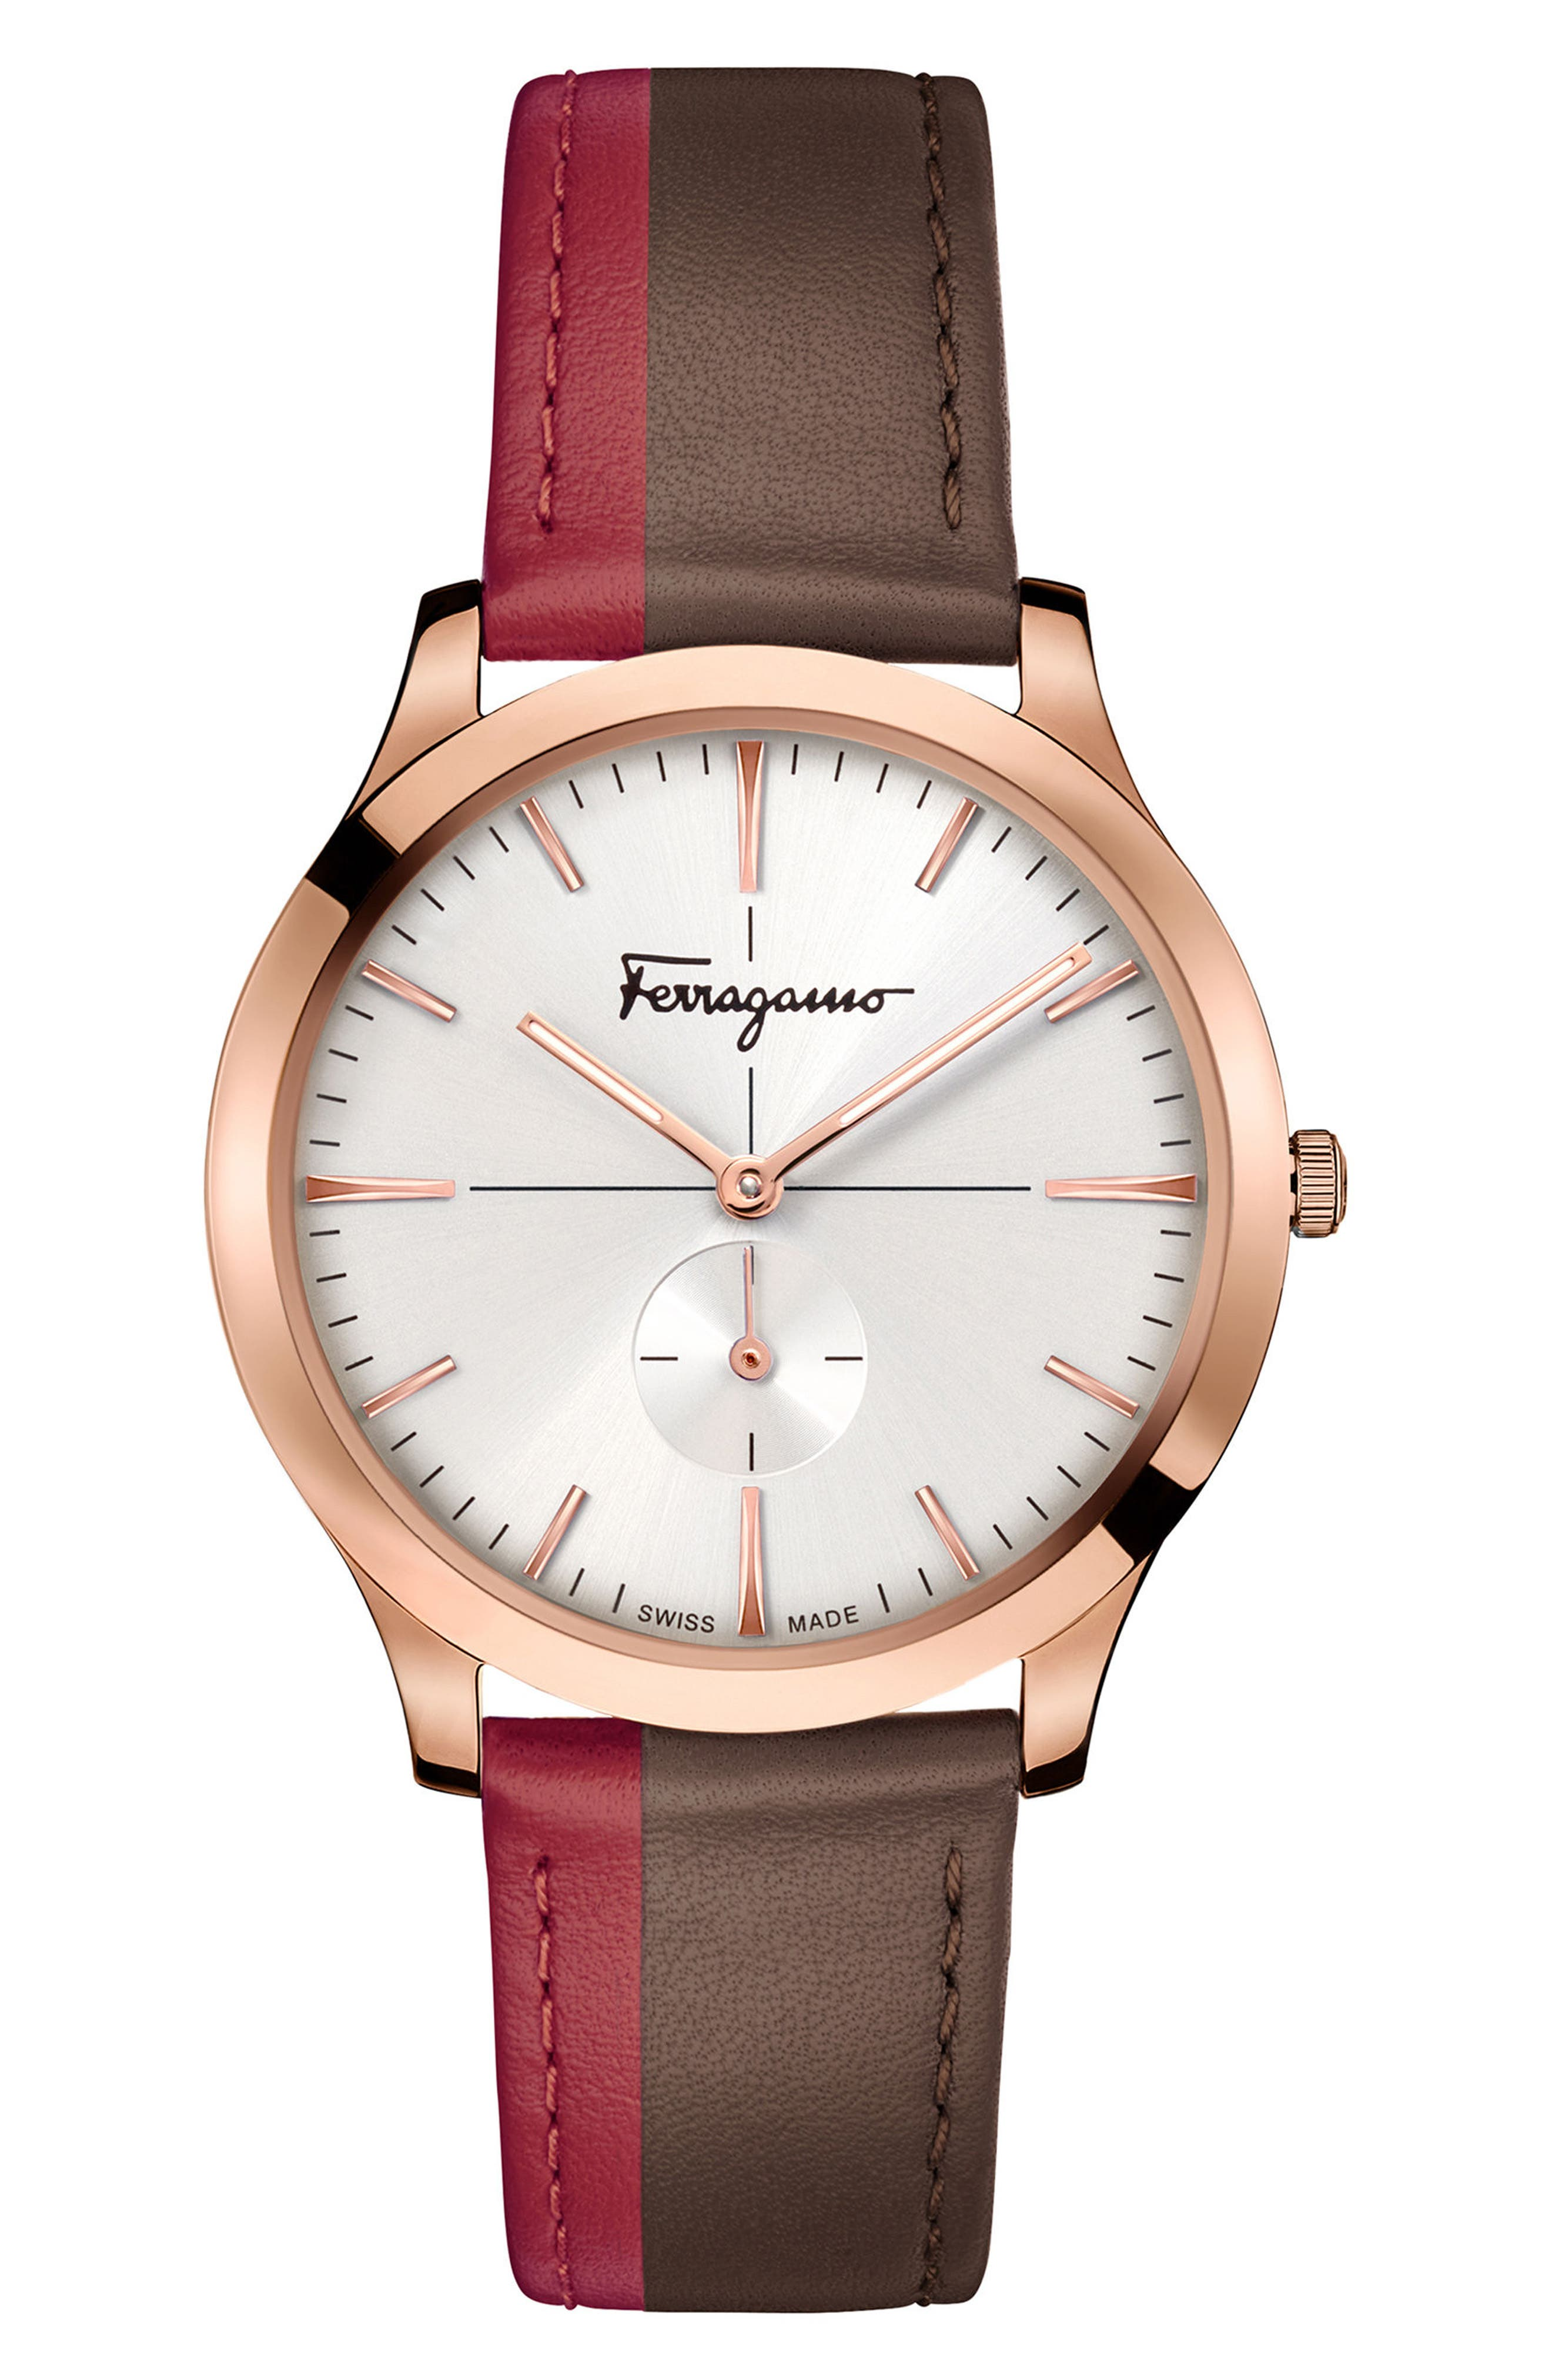 Slim Formal Brown & Red Strap Watch, 40Mm in Red/ Brown/ Gold